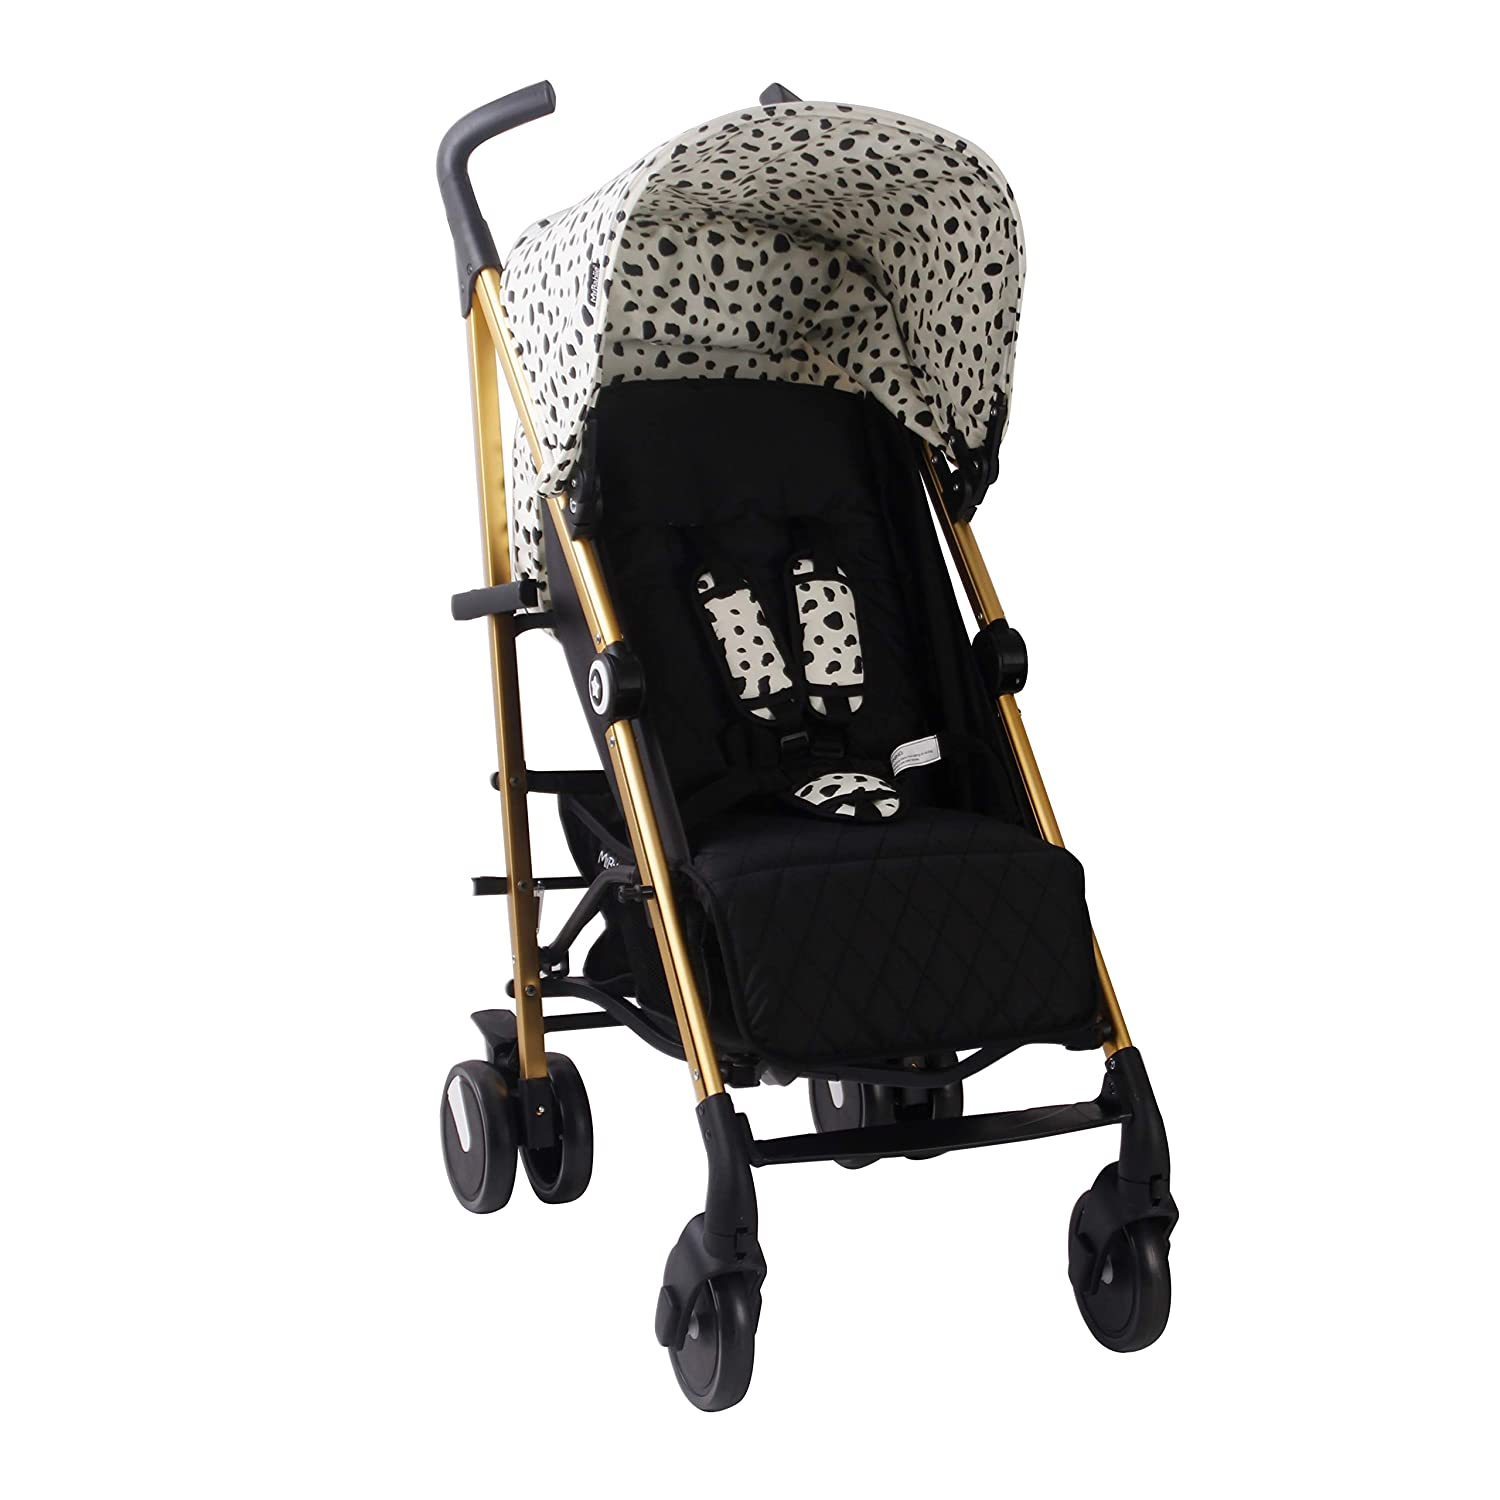 My Babiie Catwalk Dalmatian Baby Stroller – Lightweight Baby Stroller with Carry Handle – Gold Frame and Dalmatian Canopy – Lightweight Travel Stroller – Suitable from Birth – 33 lbs